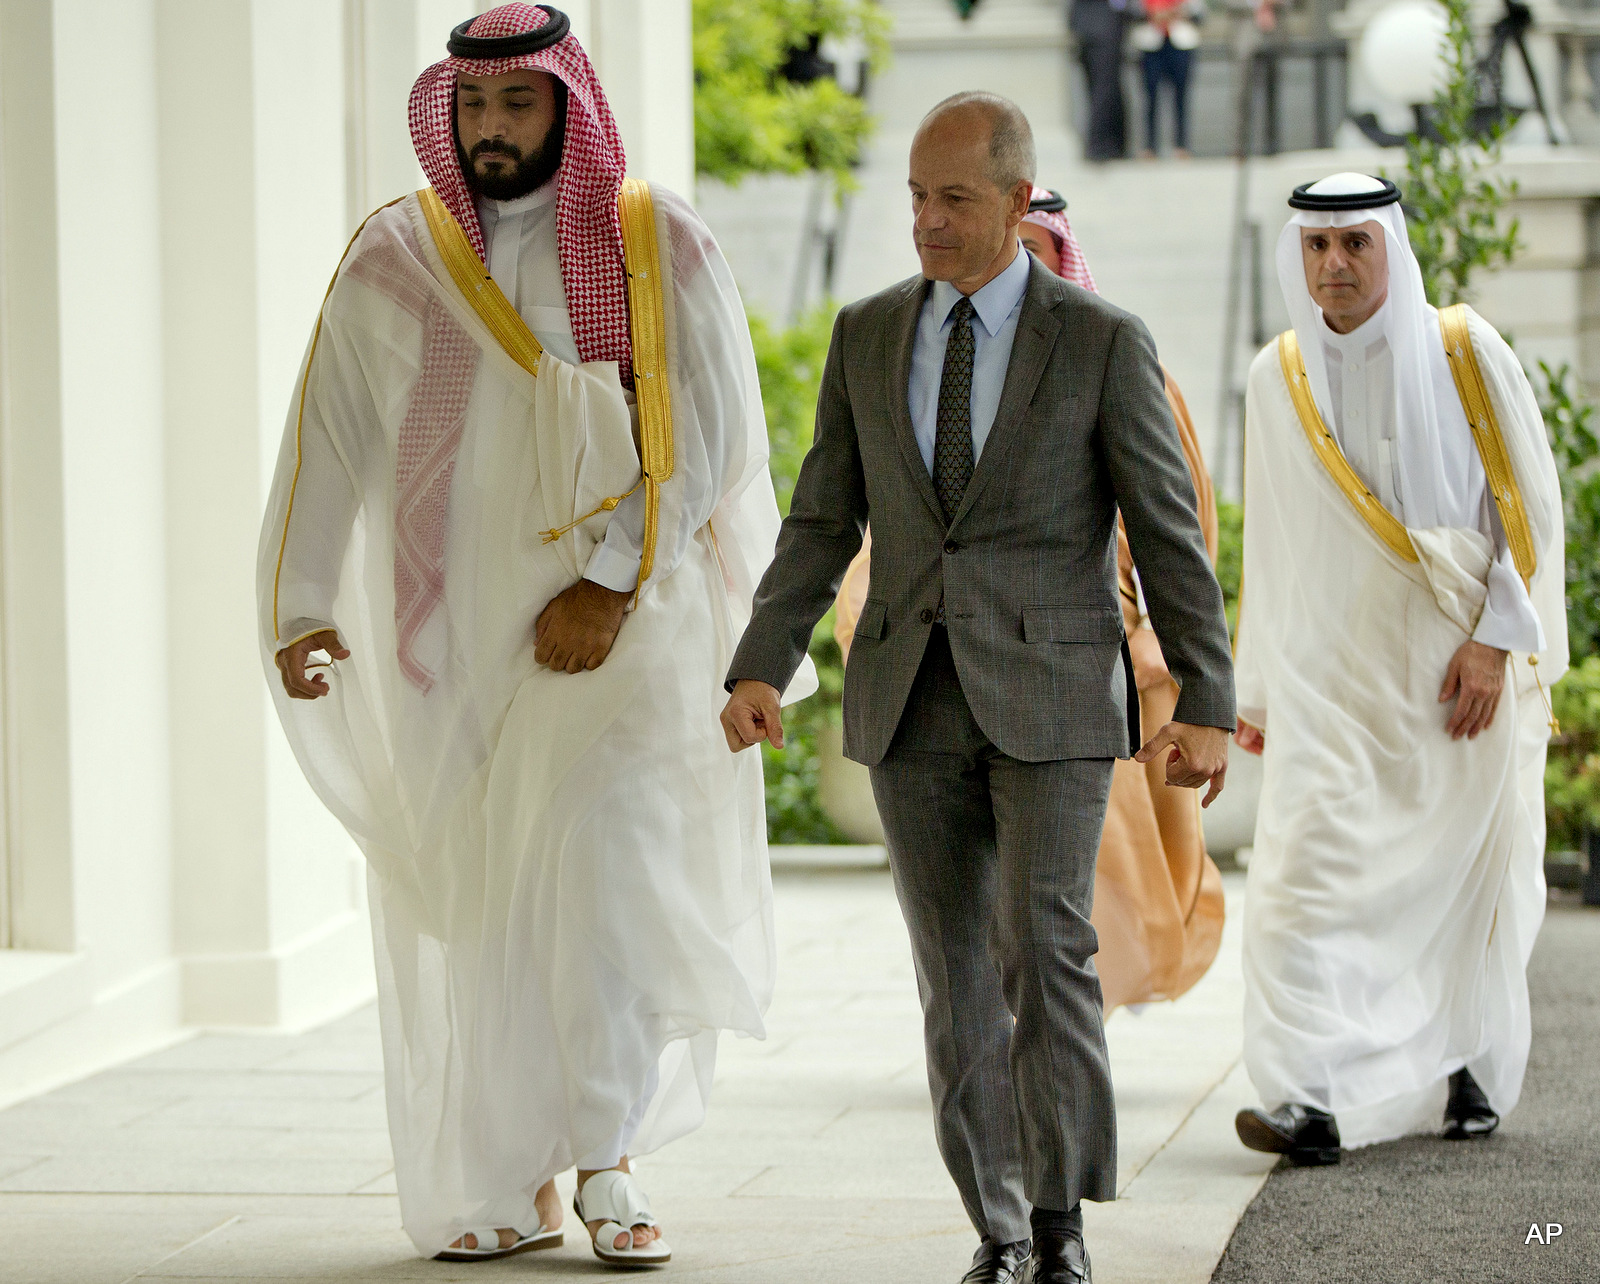 Saudi Arabia's Deputy Crown Prince Mohammed bin Salman, left, walks into the West Wing of the White House in Washington escorted by Mark E. Walsh, center, Deputy Chief of Protocol, Friday, June 17, 2016.